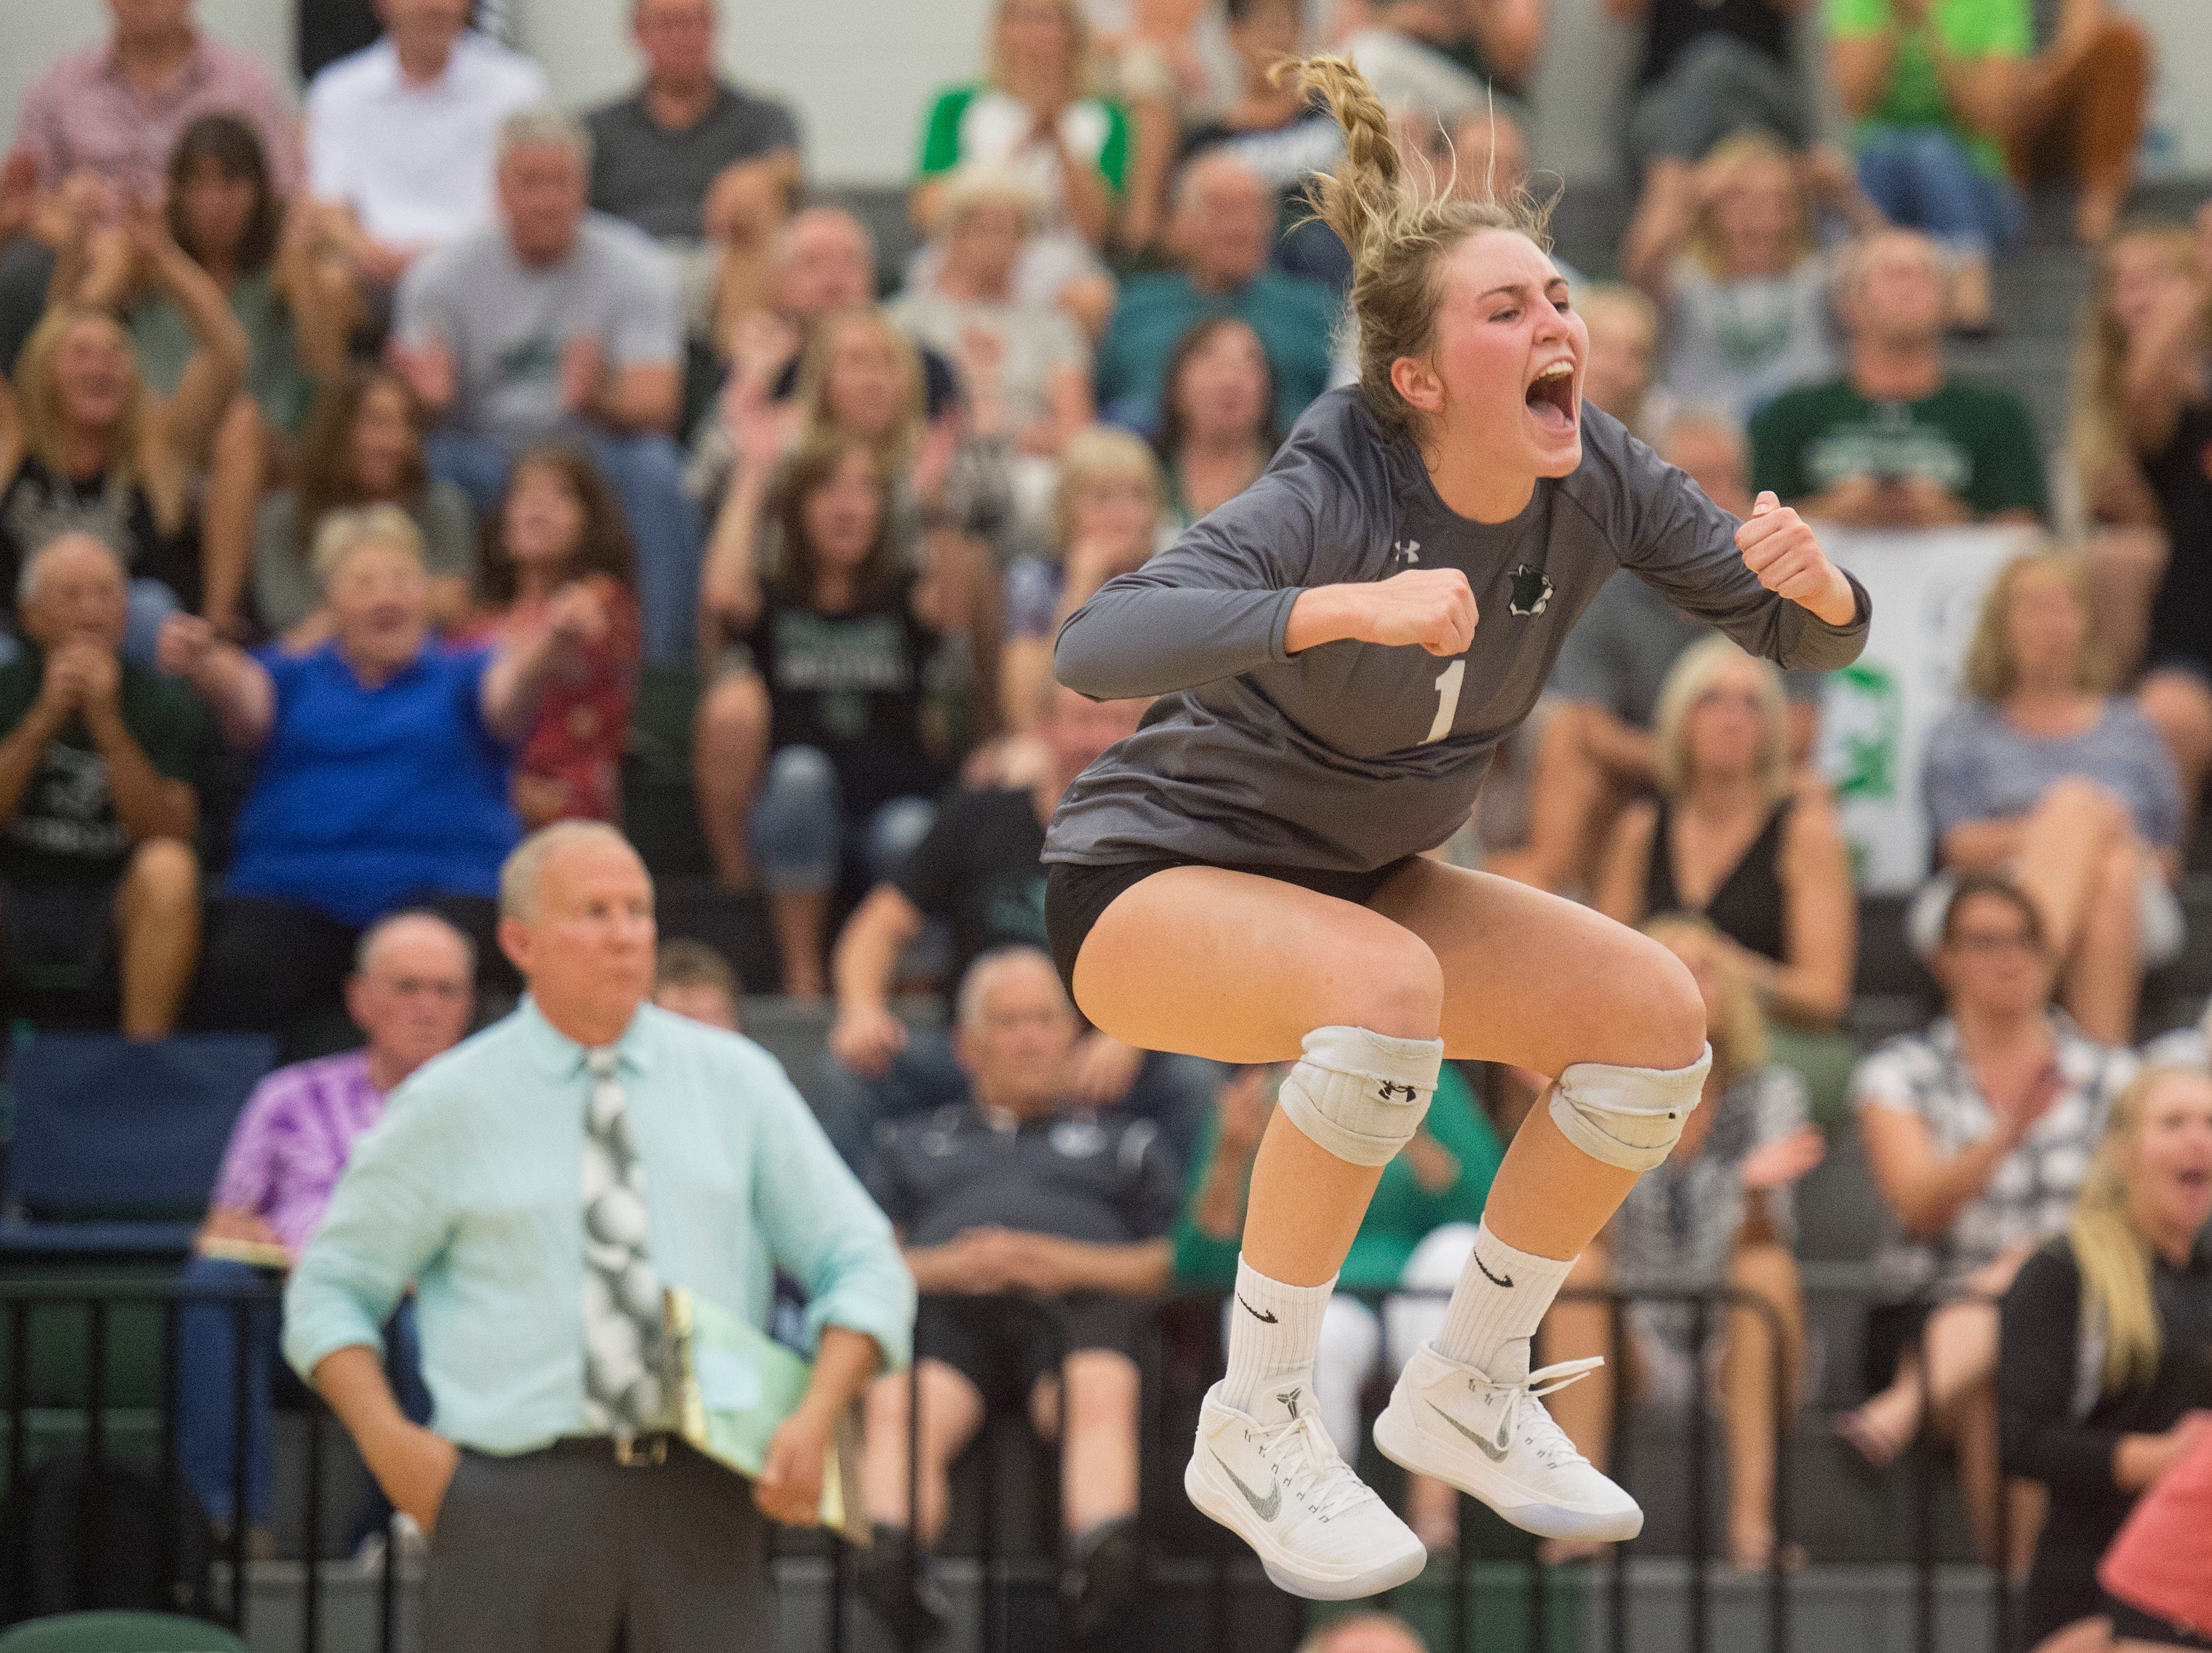 Fossil Ridge senior Charlie Durbin jumps in the air after the SaberCats make a play during a game against Fort Collins High School on Tuesday, September 12, 2018. The SaberCats won 3-1.